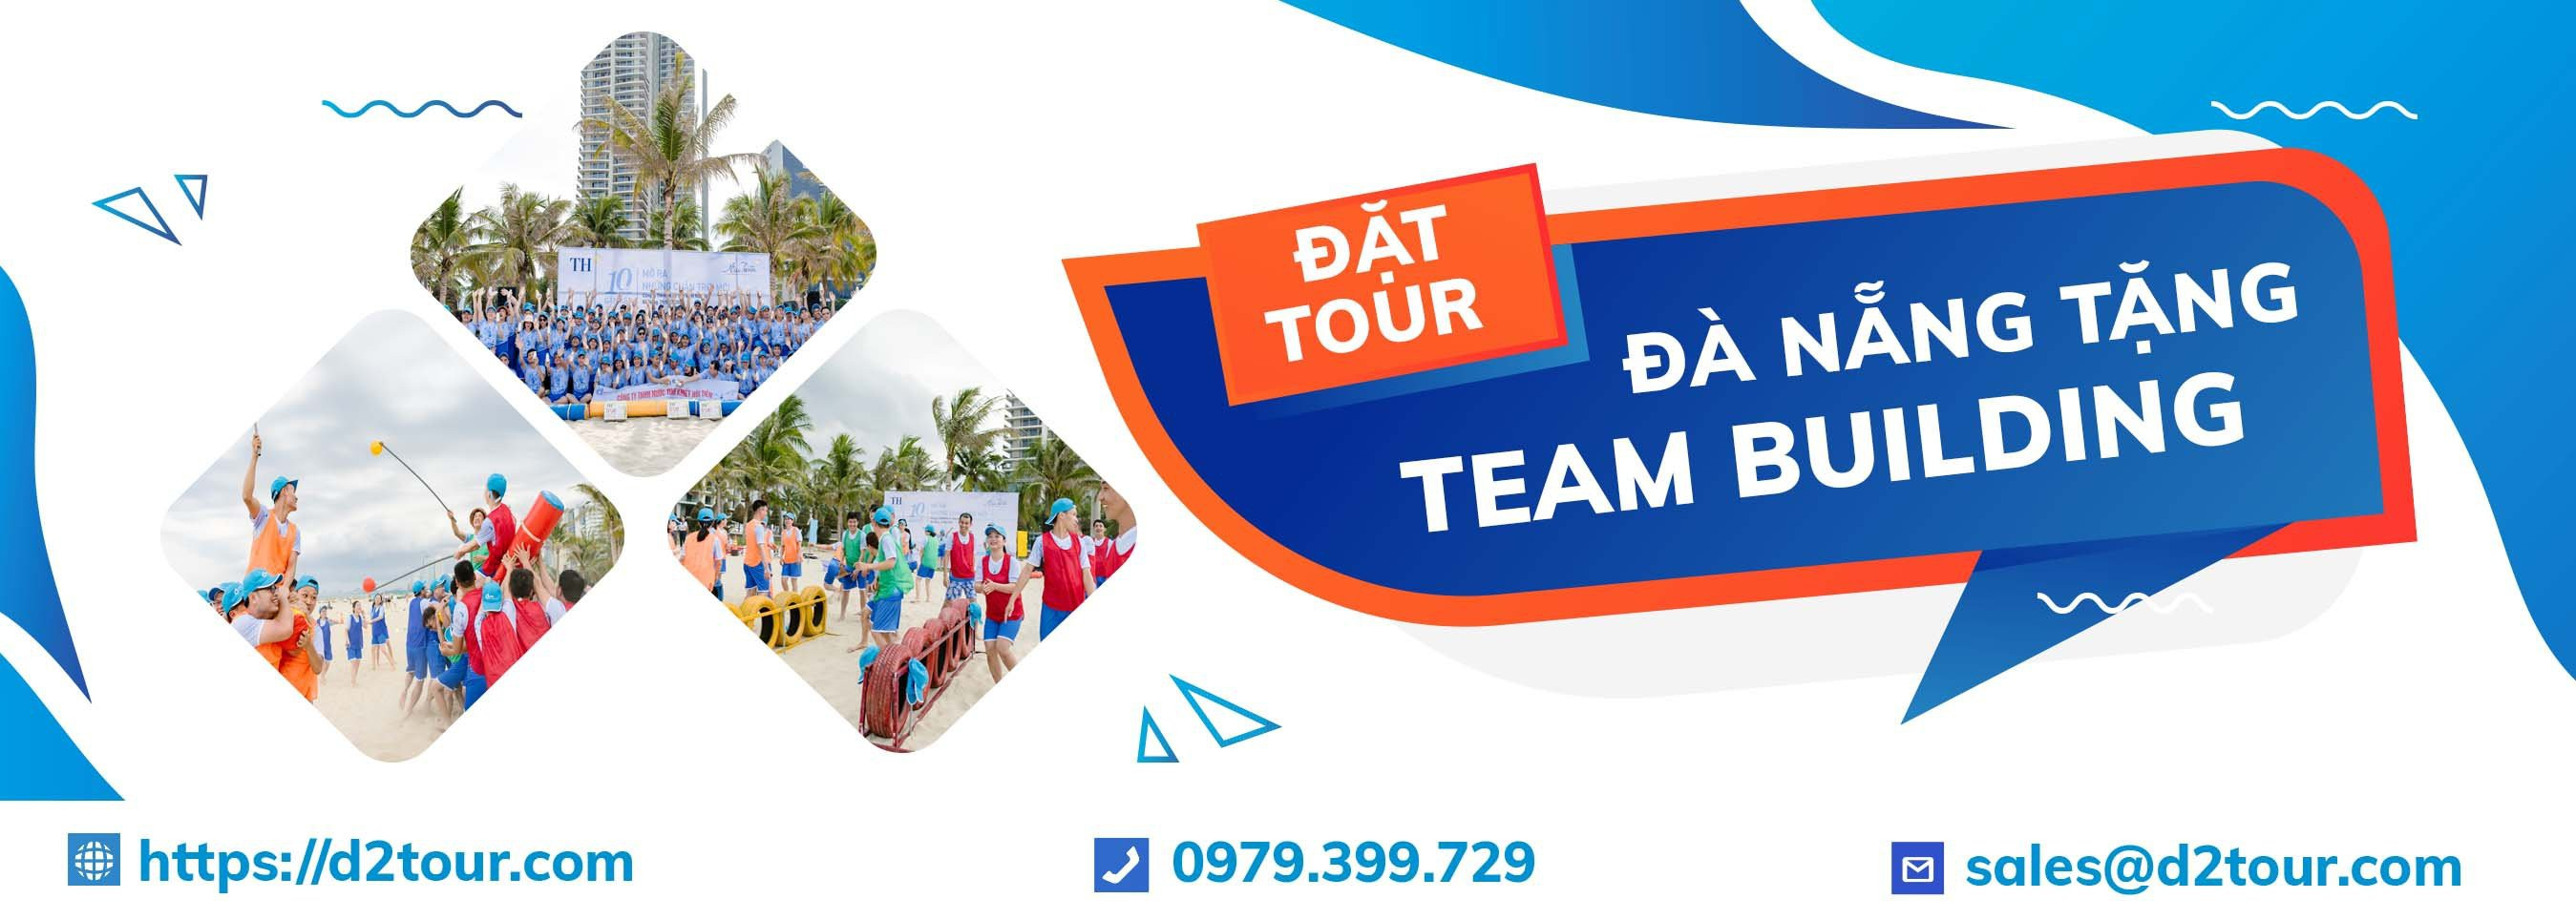 tour team building đà nẵng